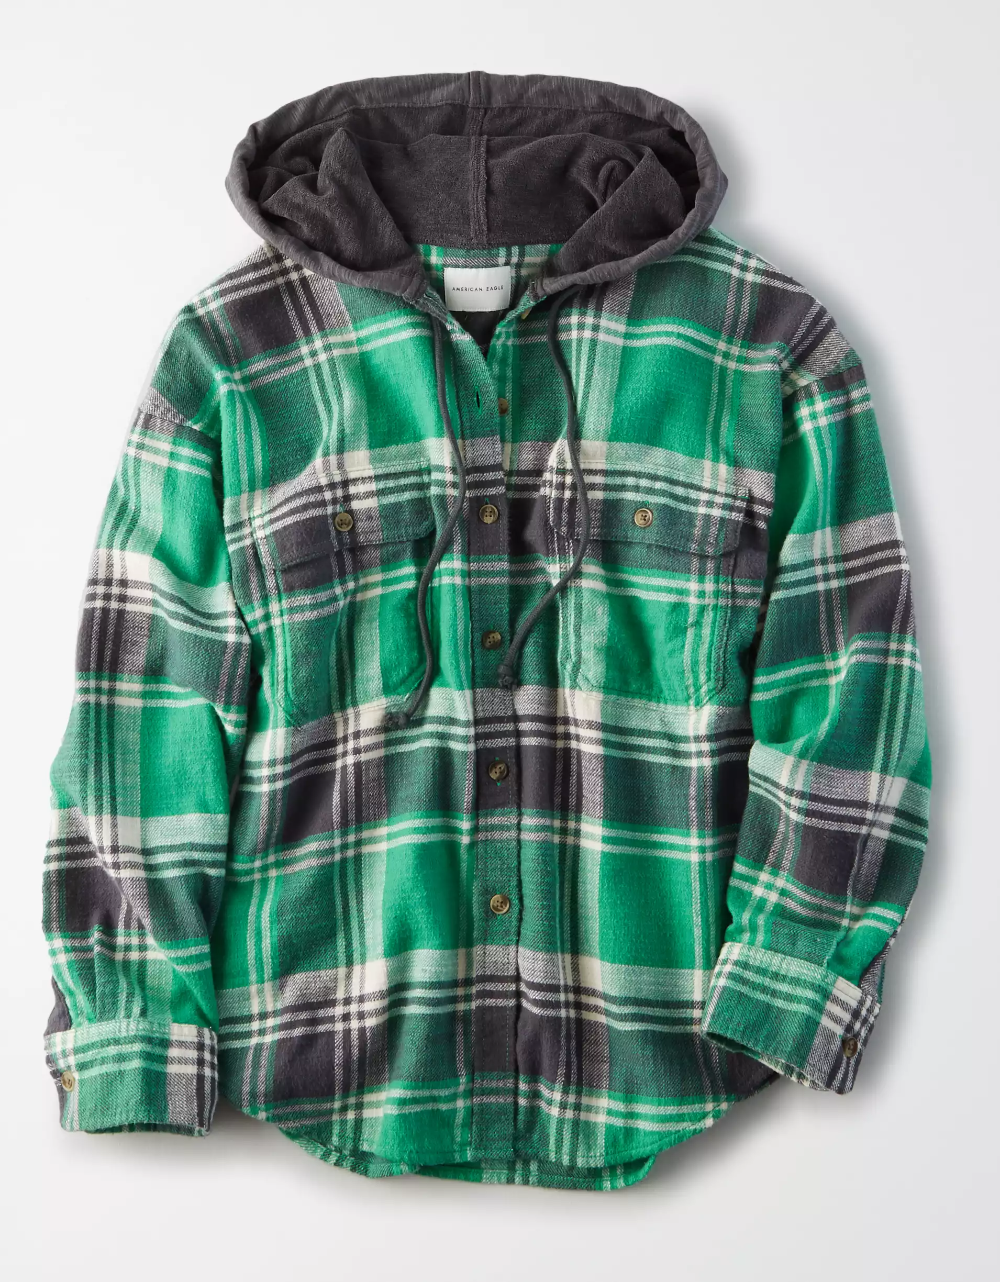 Ae Plaid Hooded Button Up Shirt Flannel Shirt Outfit Hooded Flannel Outfit Plaid Flannel Shirt [ 1282 x 1000 Pixel ]